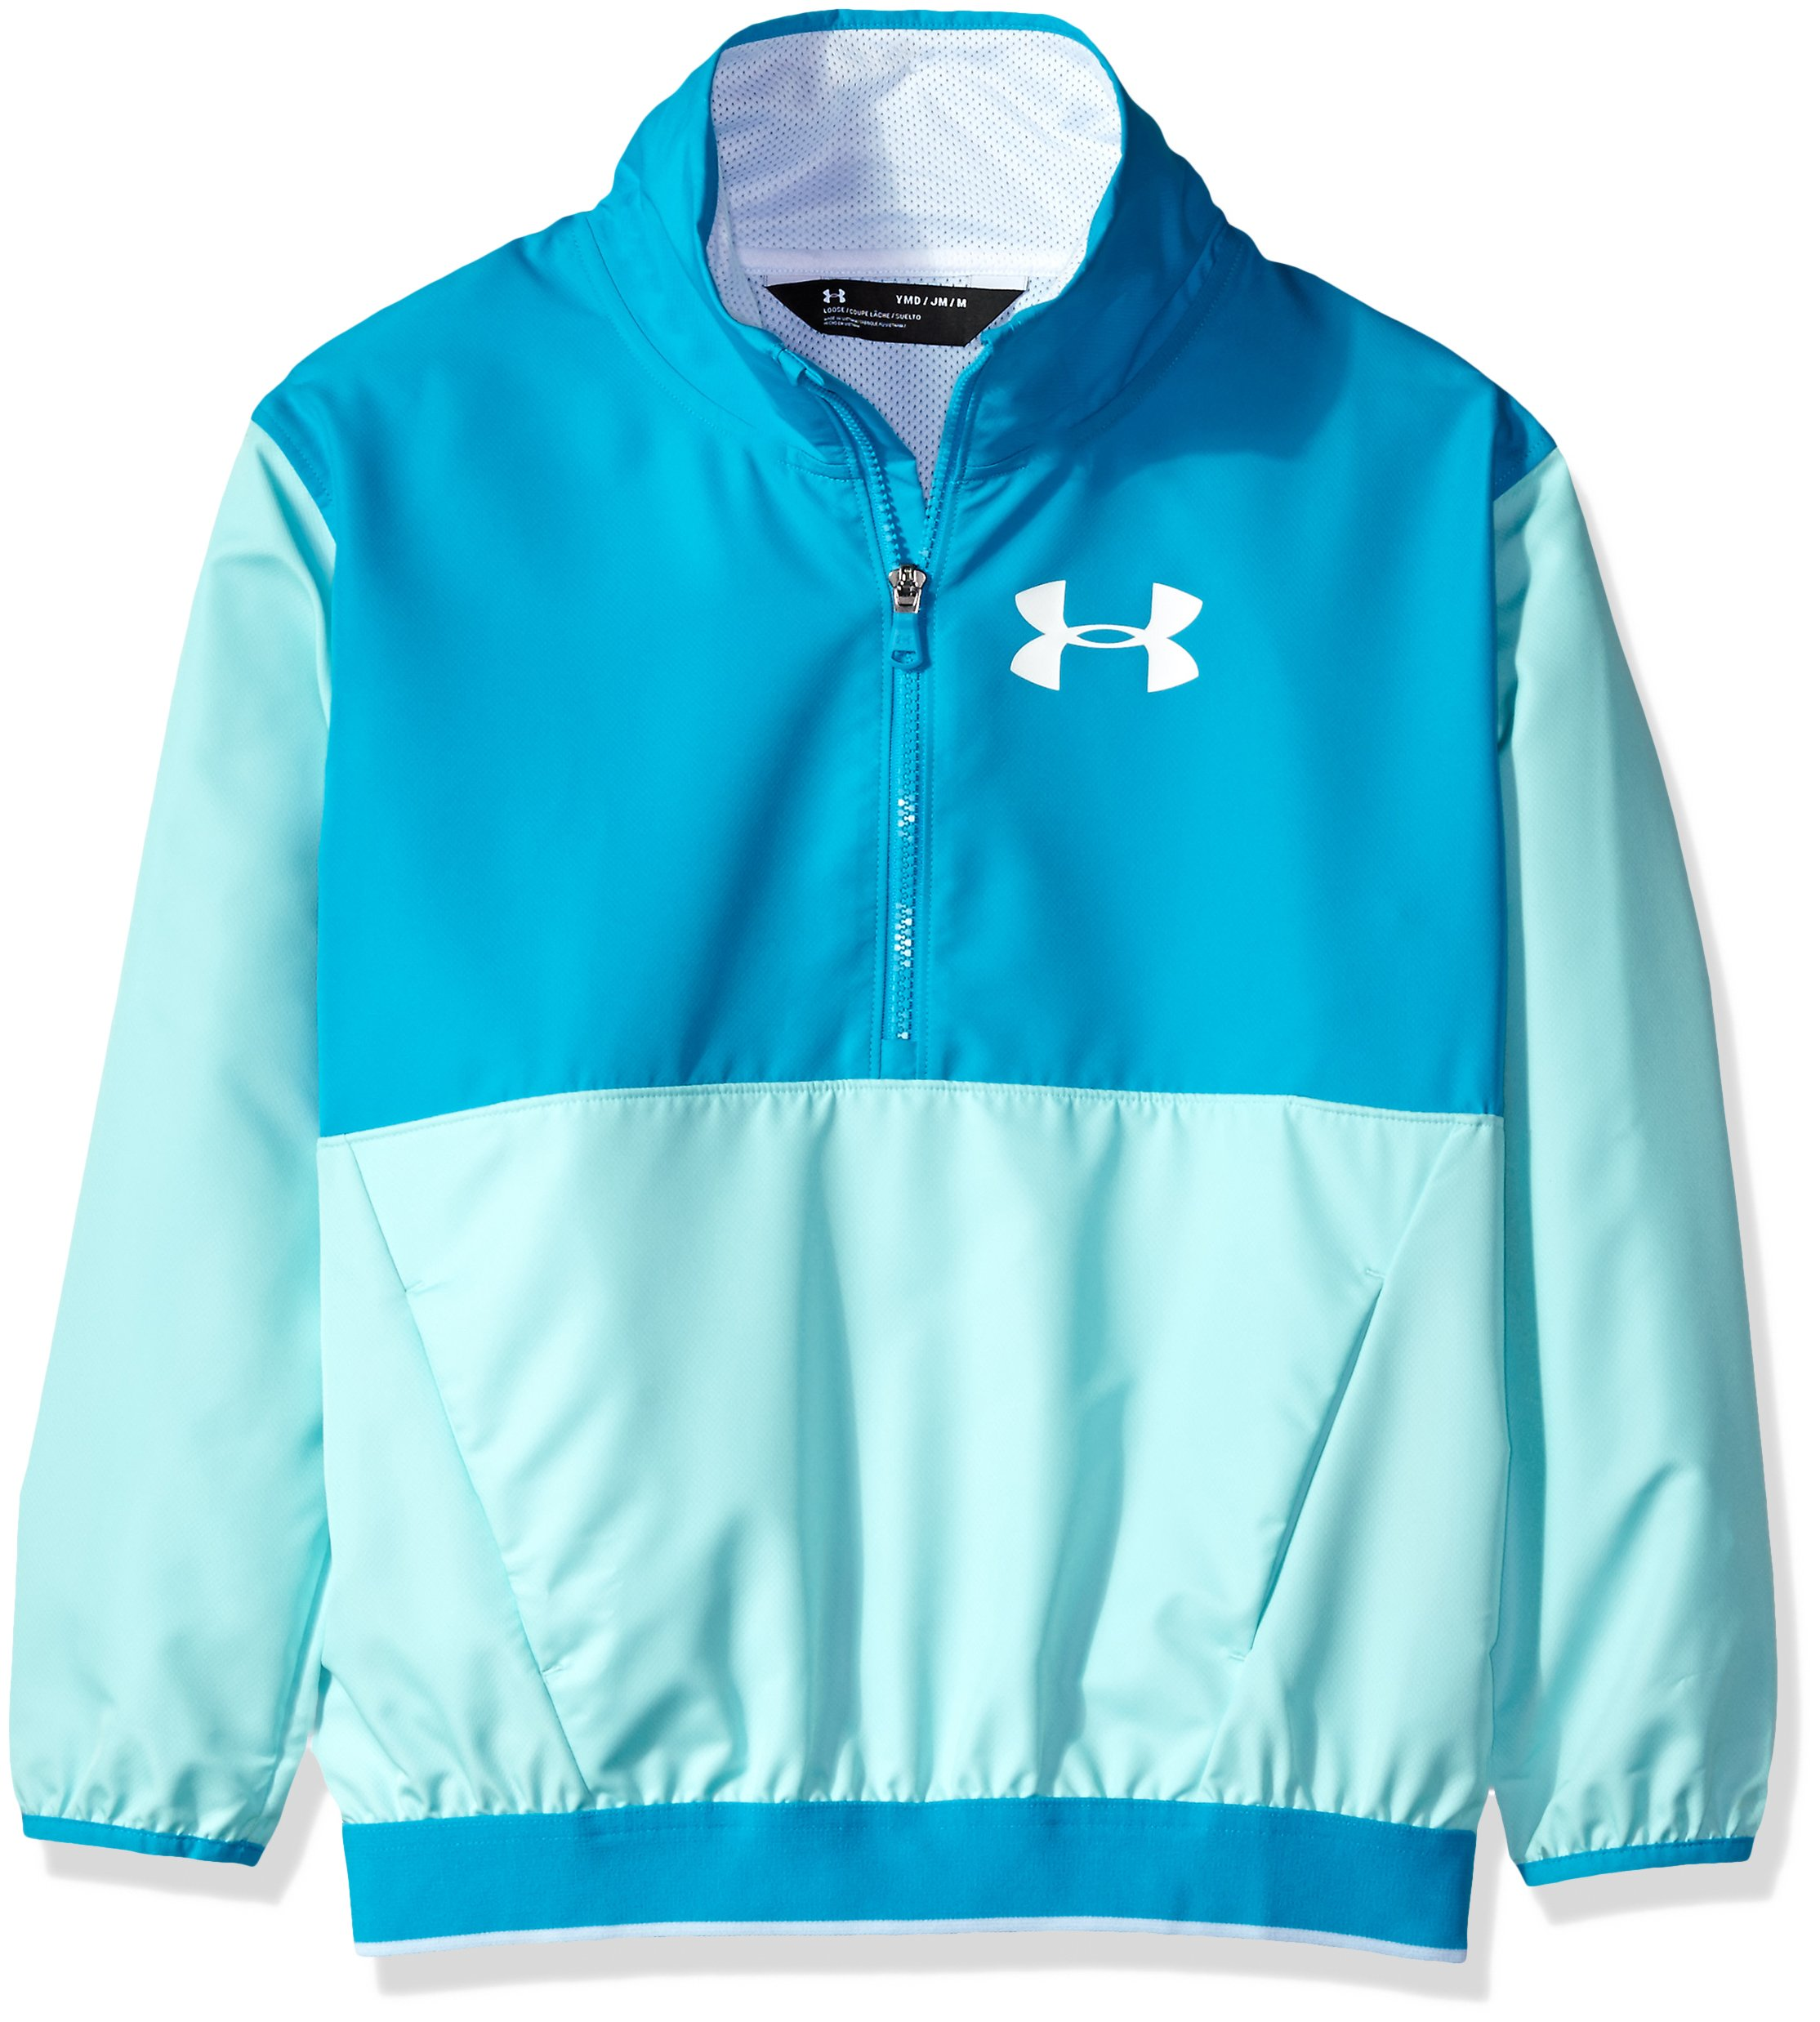 Under Armour Girls' Boat House Jacket,Blue Infinity (942)/White, Youth Medium by Under Armour